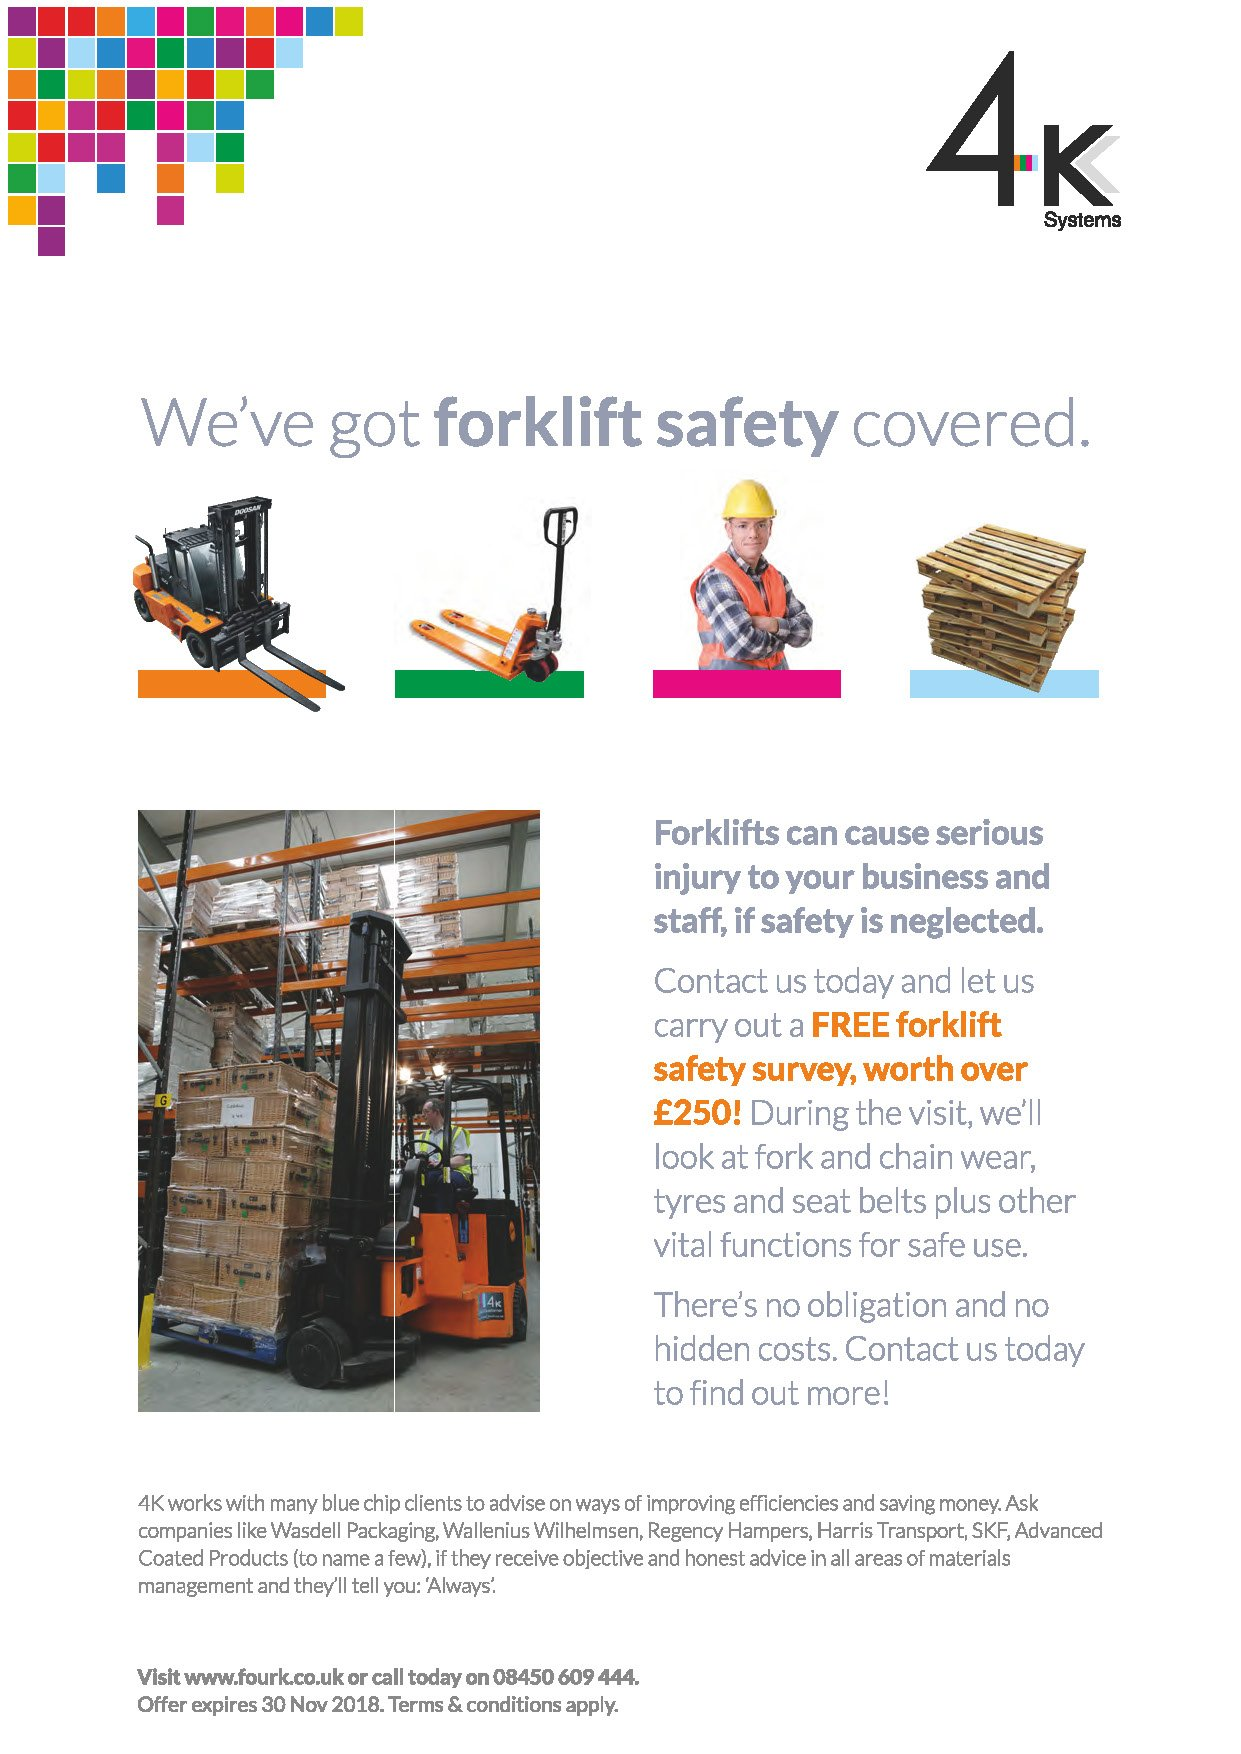 Forklift Safety Survey